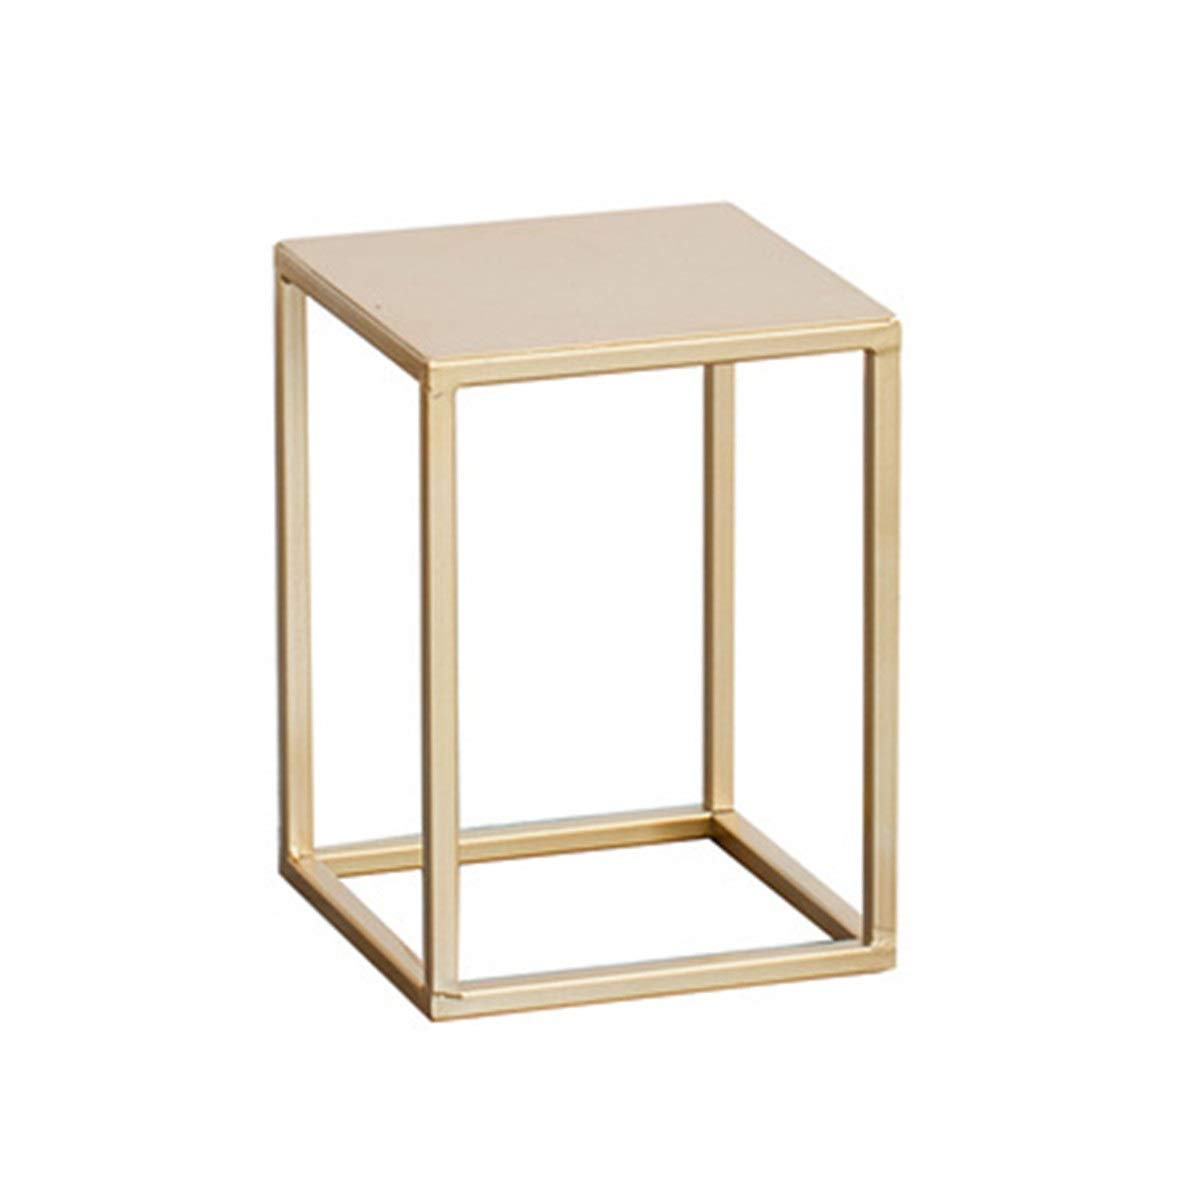 JIUYAODIANZI Simple Modern Golden Wrought Iron Flower Stand, Living Room Frame, Suitable for Indoor Green Flower Pots and More Meat. (Size : S) by JIUYAODIANZI